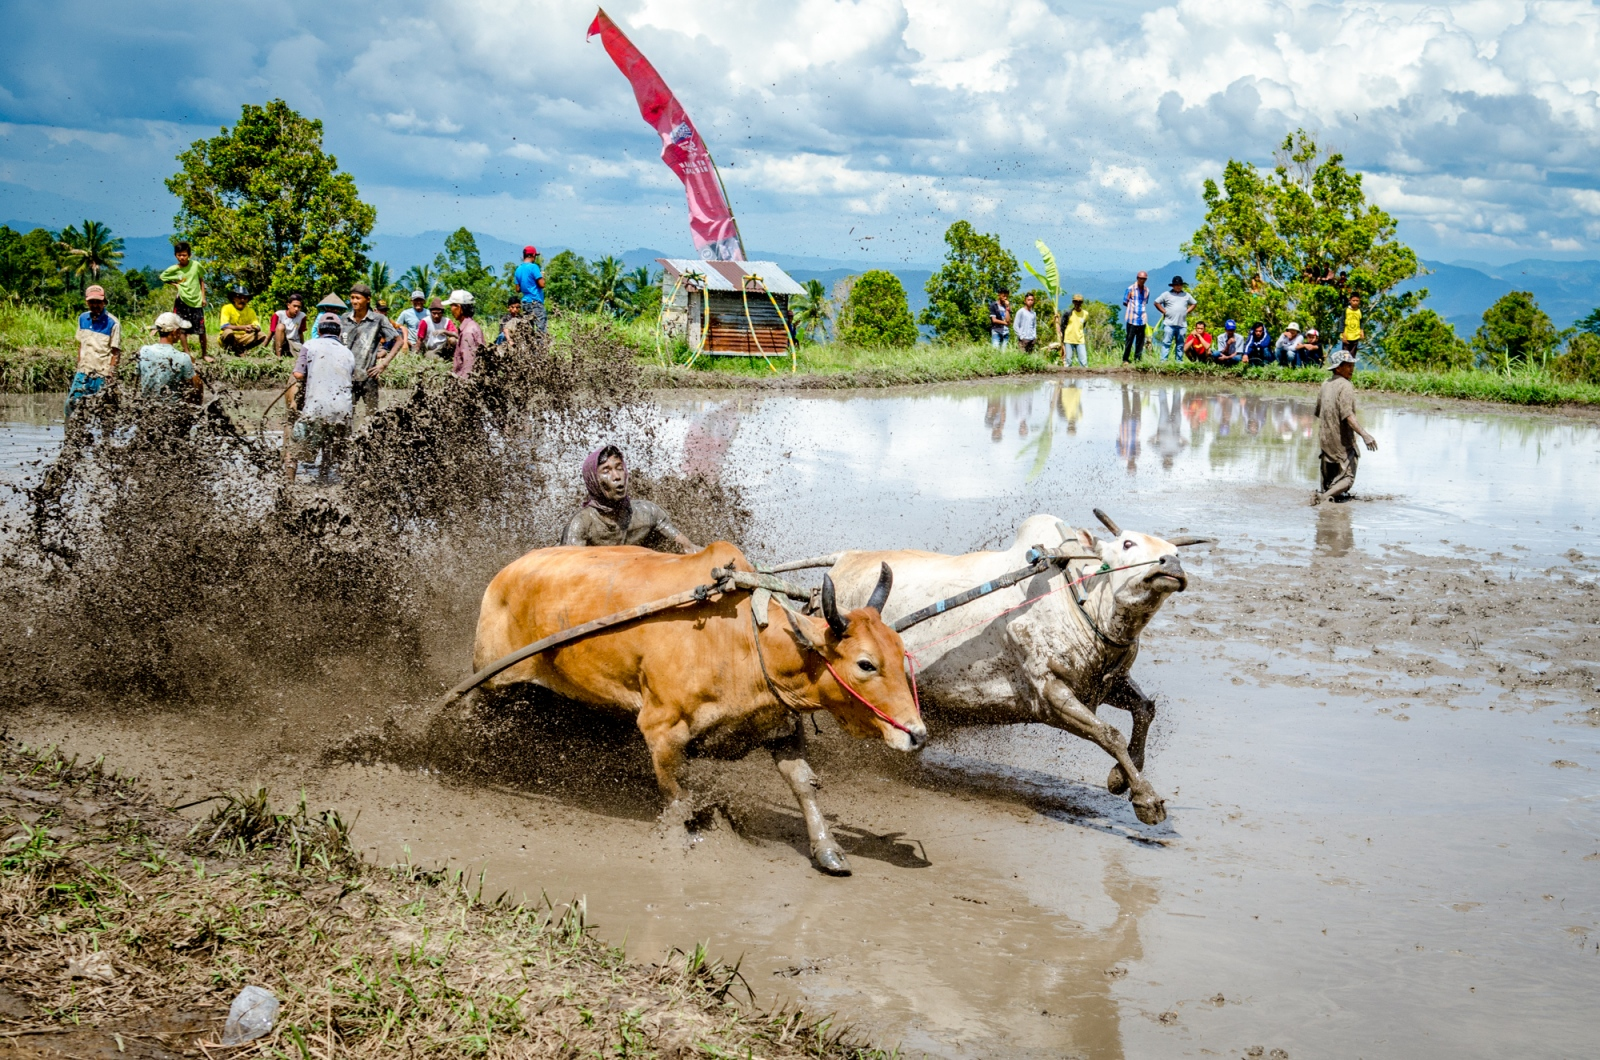 Men dive out of the way as the jockey and bulls take off for their run. The bulls are joined only by a small rope between their harnesses, and the jockey whose feet are based on their wooden harnesses they wear, and whose hands grip on to their tails as they run. In Pacu Jawi, the Indonesia bull races of West Sumatra, the aim is to run the bulls as far and as straight as possible, adding in flair when possible. The race track is a partially drained rice paddy, being cleared out after the harvest. With his feet resting on small wooden pegs, the jockey tries to keep the bulls racing forward - without losing his grip, he may alternate hands for style points and bite the tails of the bulls to drive them on. Many of the spectators have put down money on both bull pairs and jockeys, and thus everyone certainly wants a good show.